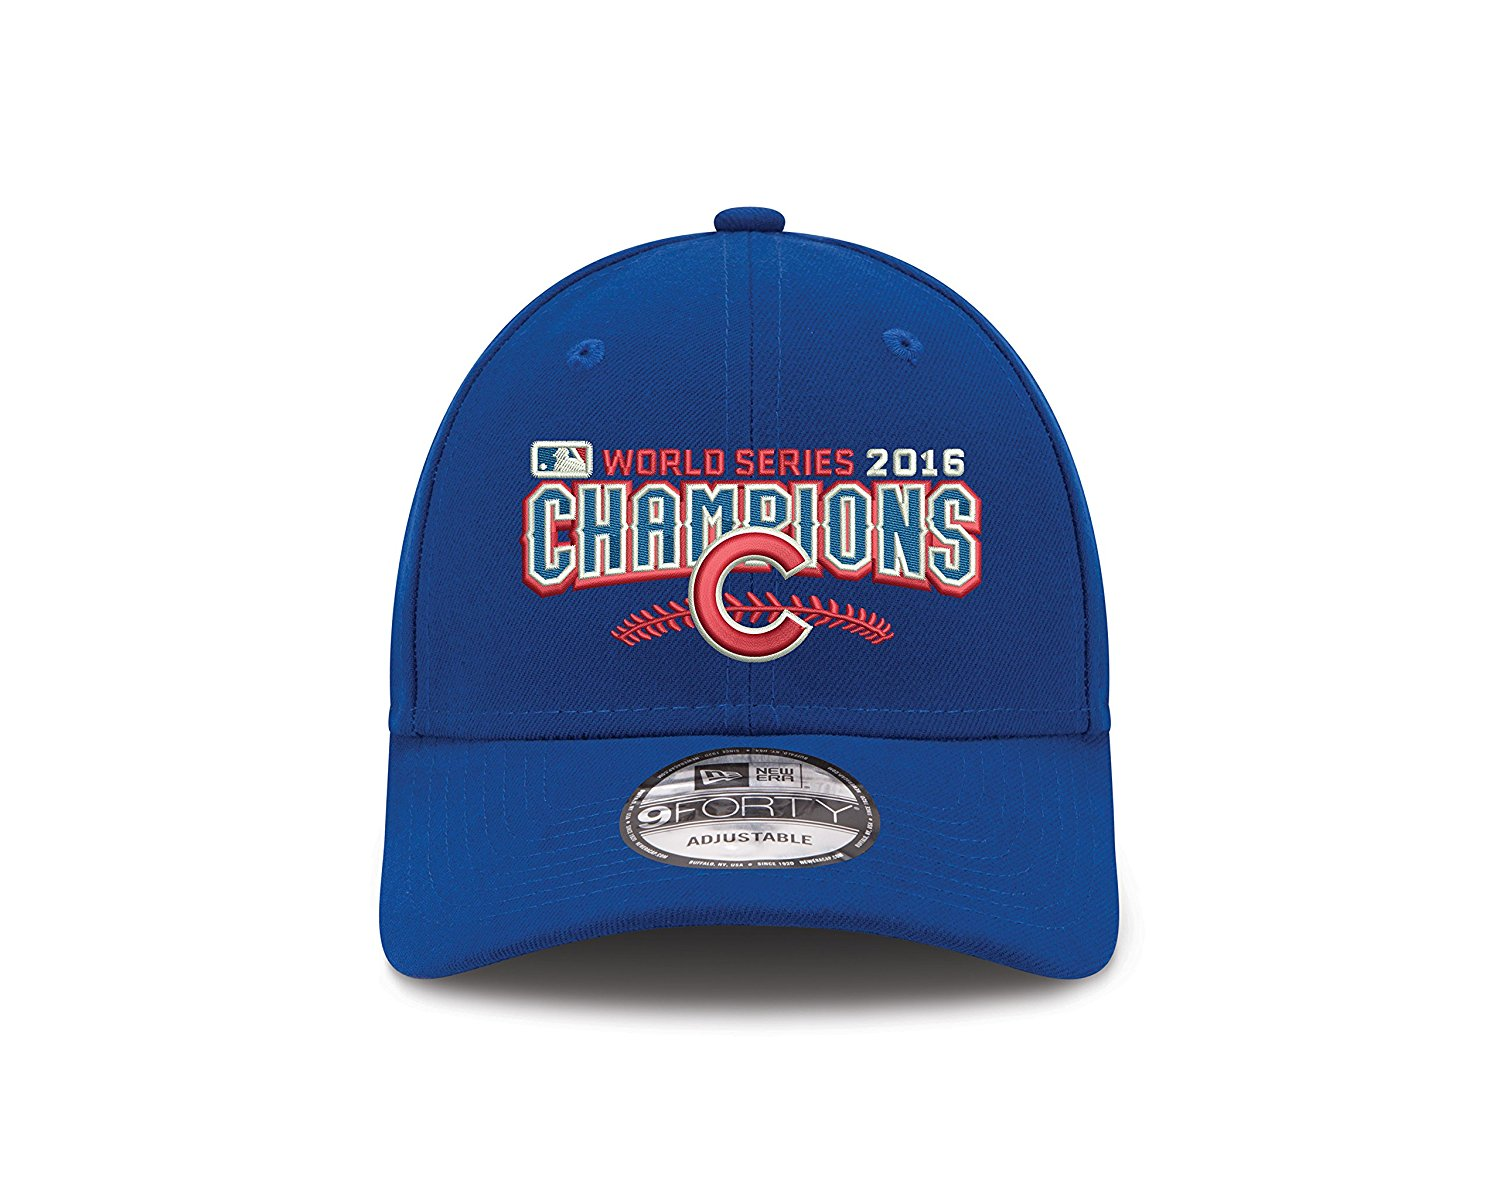 307361fef88 Get Quotations · Chicago Cubs New Era 2016 World Series Champions 9Forty  Adjustable Hat -Royal